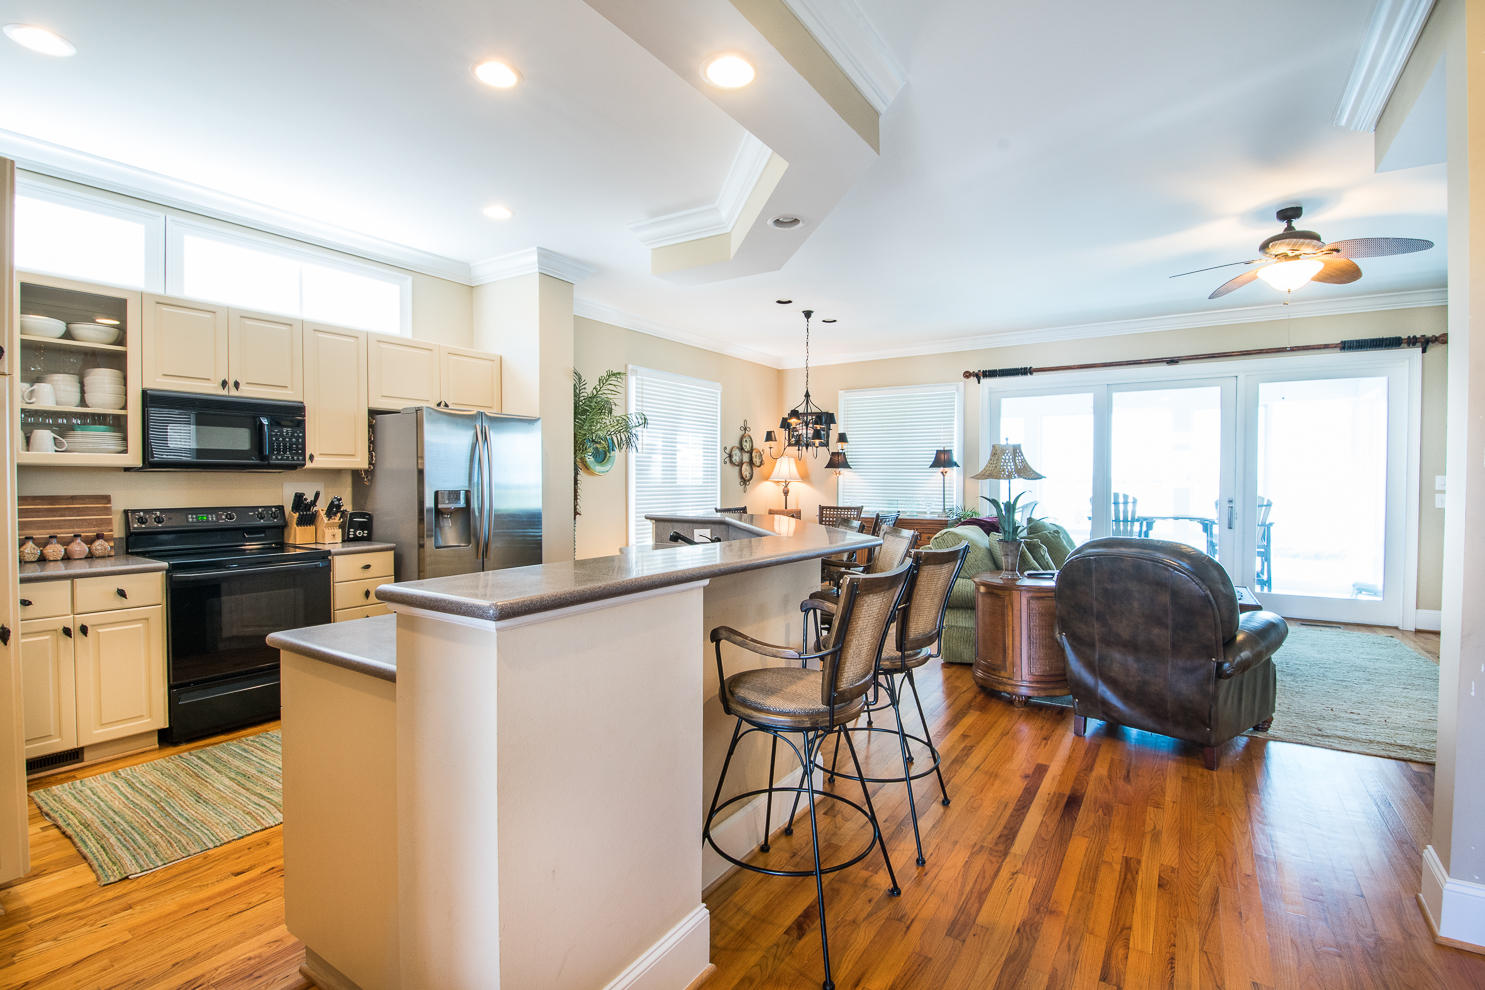 Tolers Cove Homes For Sale - B-4 & B-5 Tolers Cove Marina 70ft + Home, Mount Pleasant, SC - 39